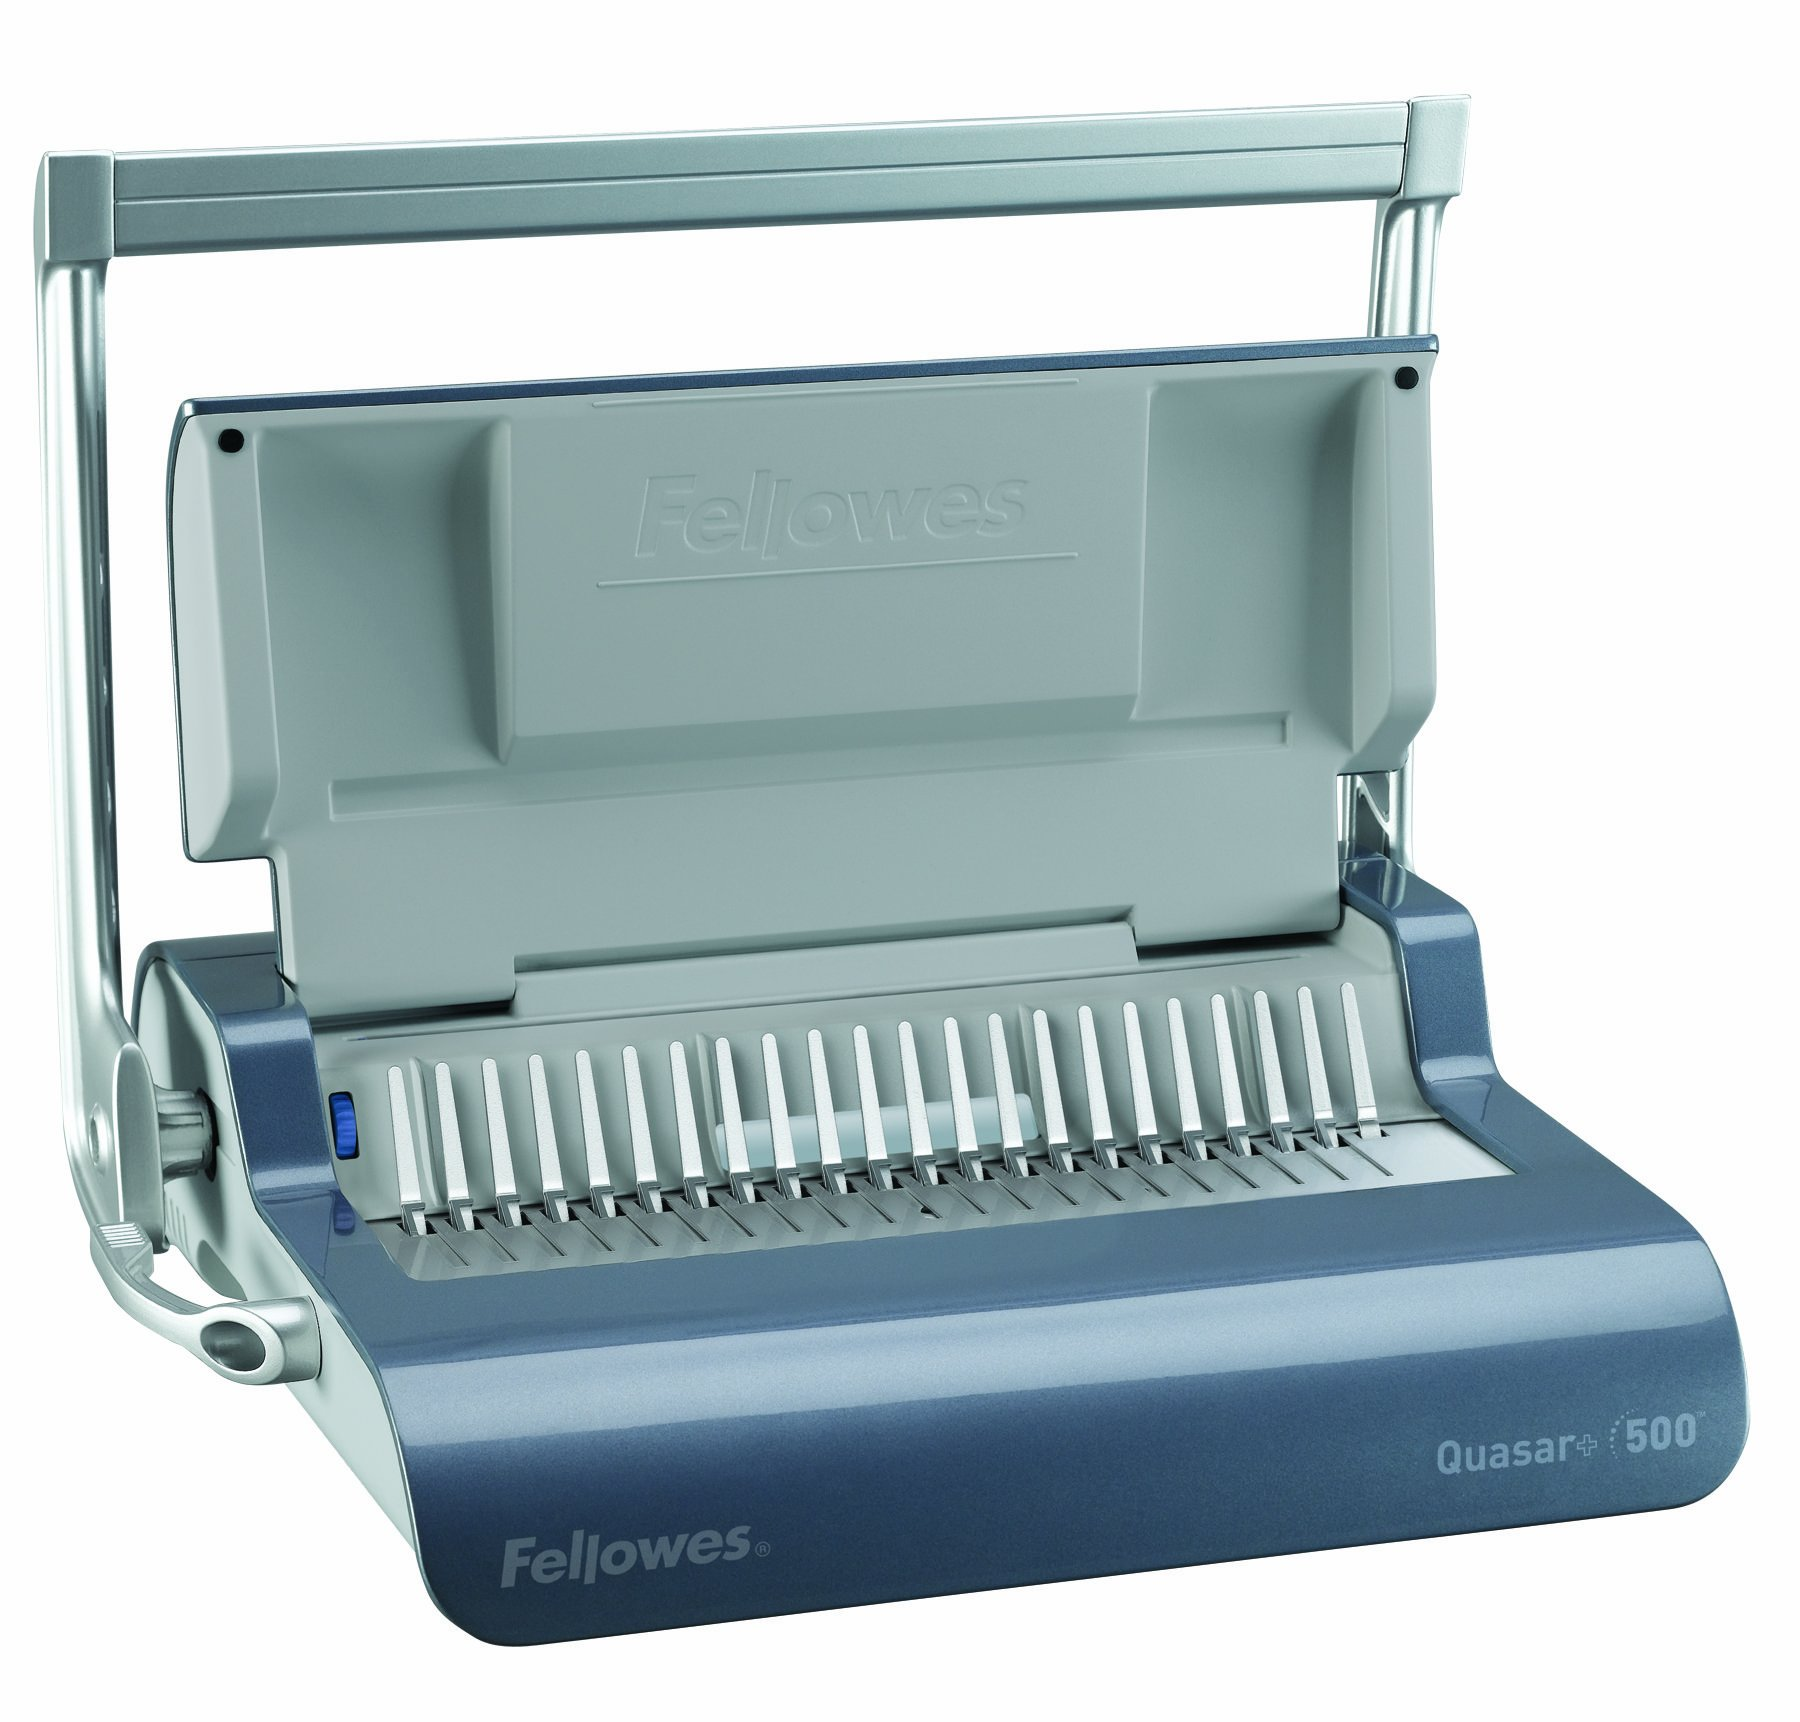 Fellowes Quasar A4 Manual Comb Binder by Fellowes (Image #6)